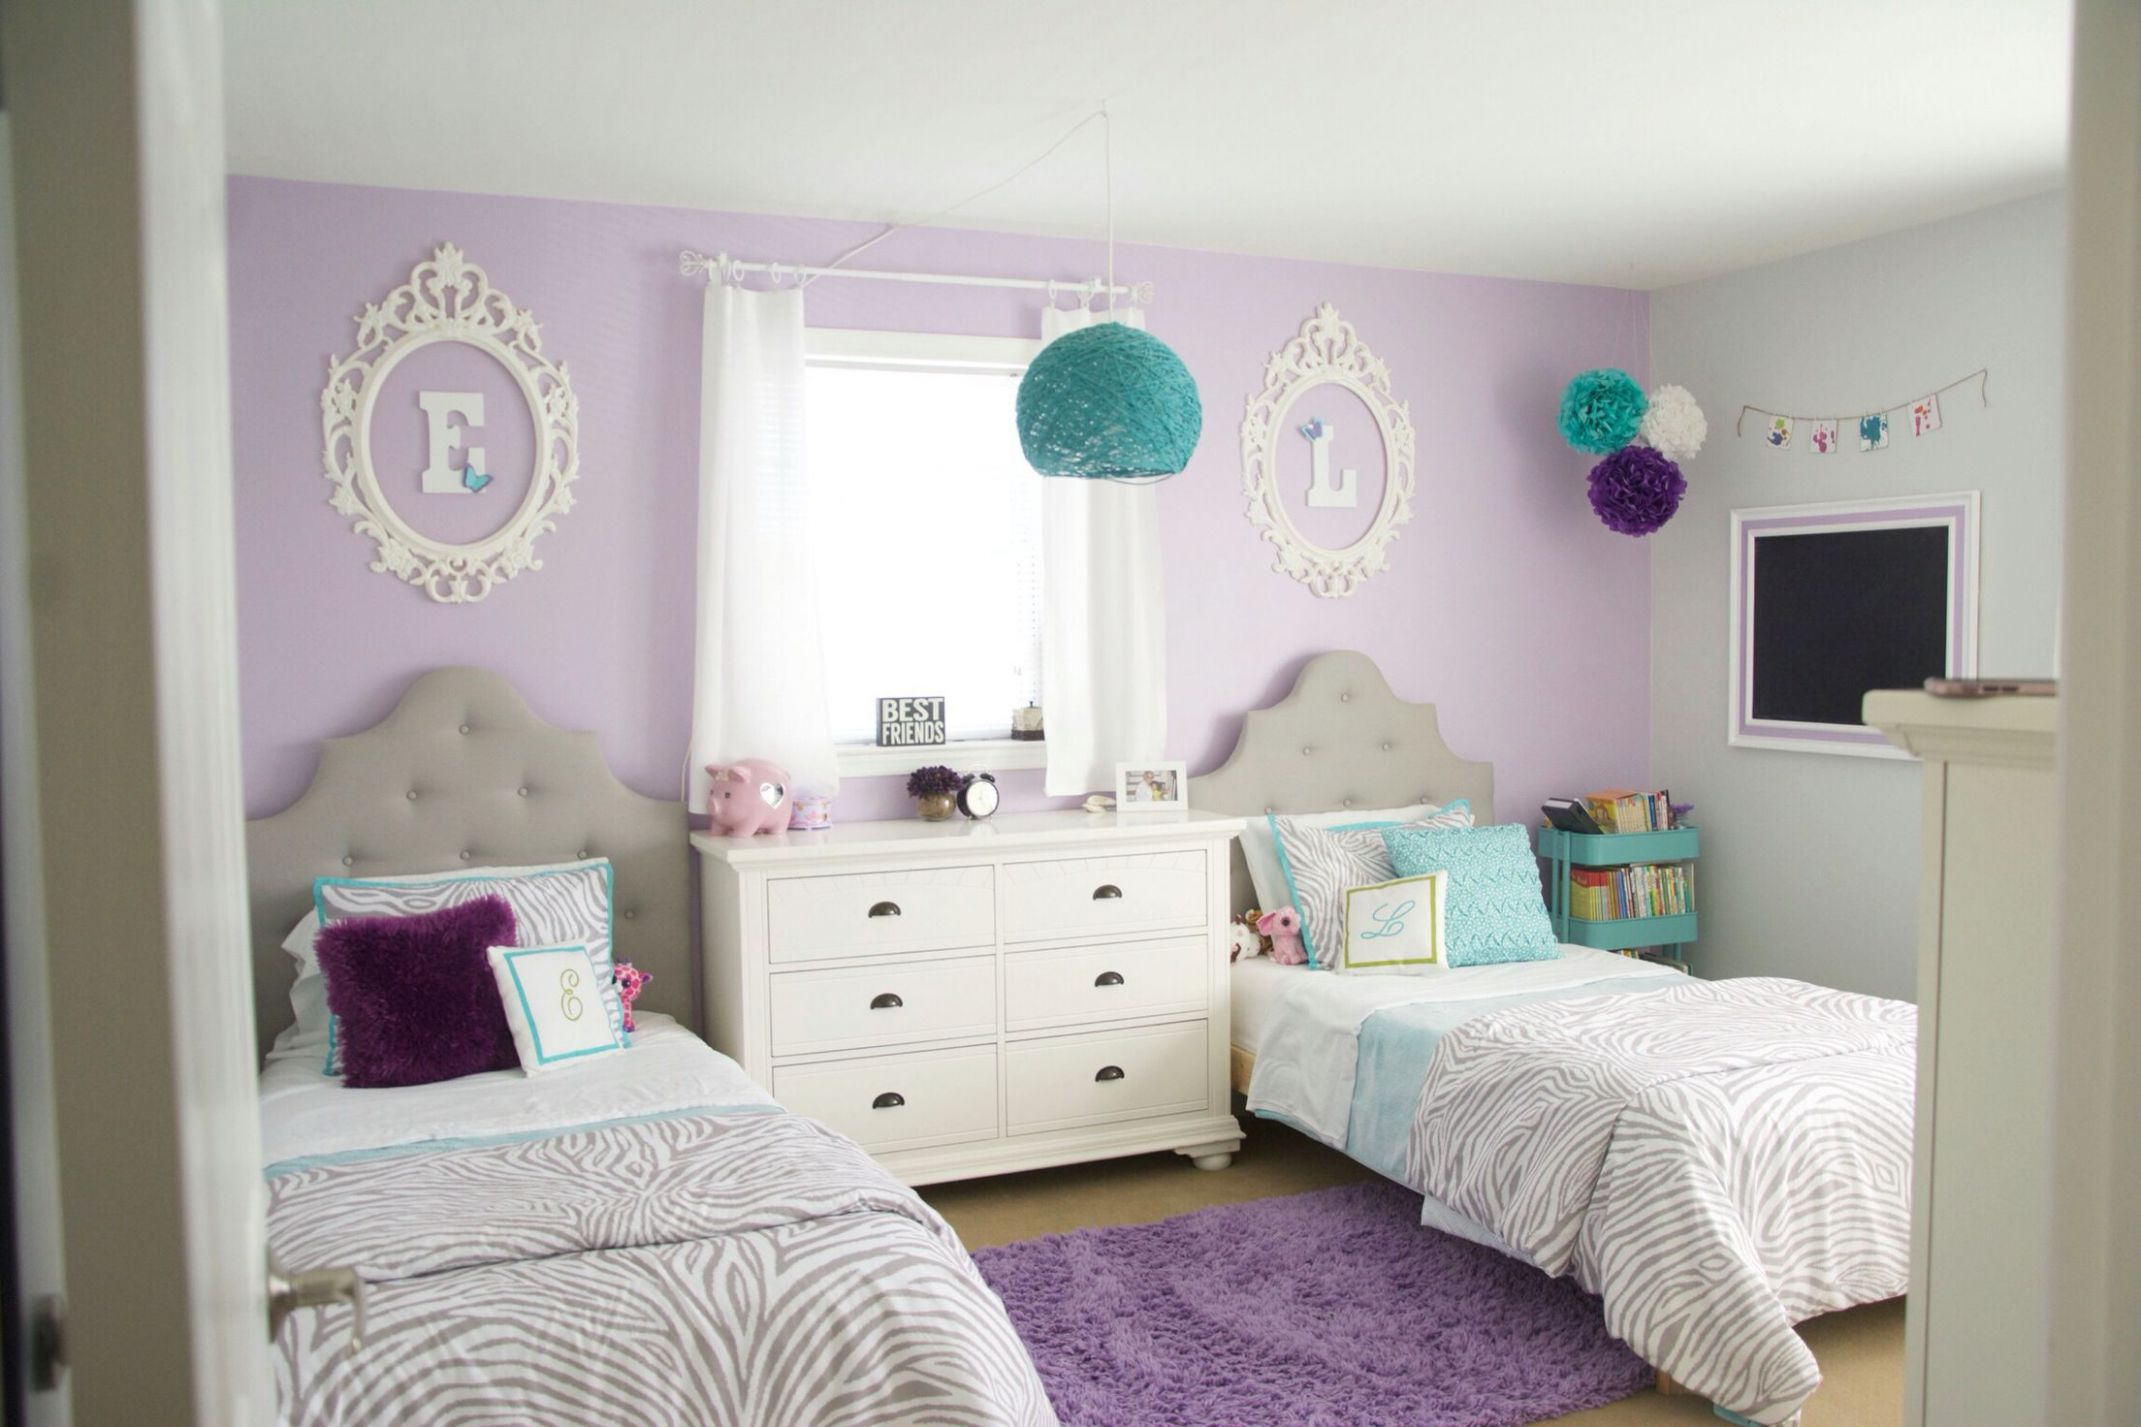 Before starting to decorate, check out these awesome purple decor ..